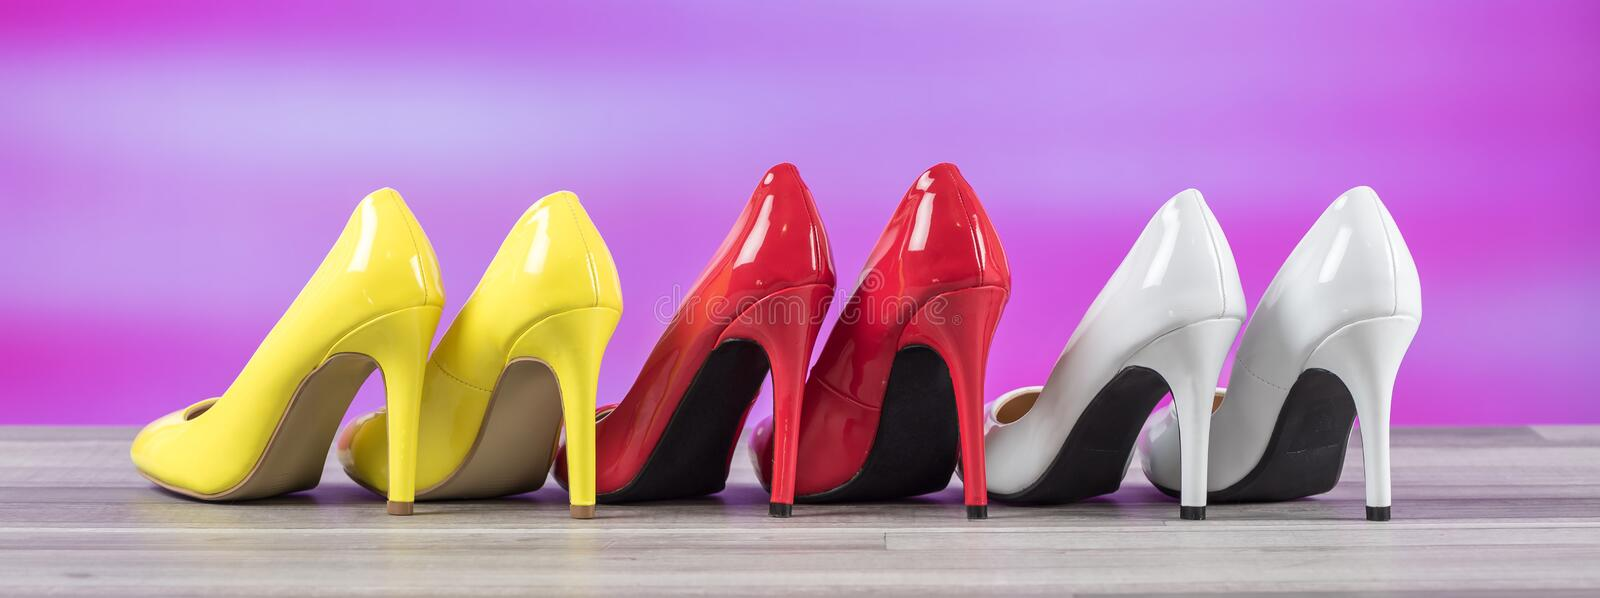 Yellow, white and red high heel shoes stock photography